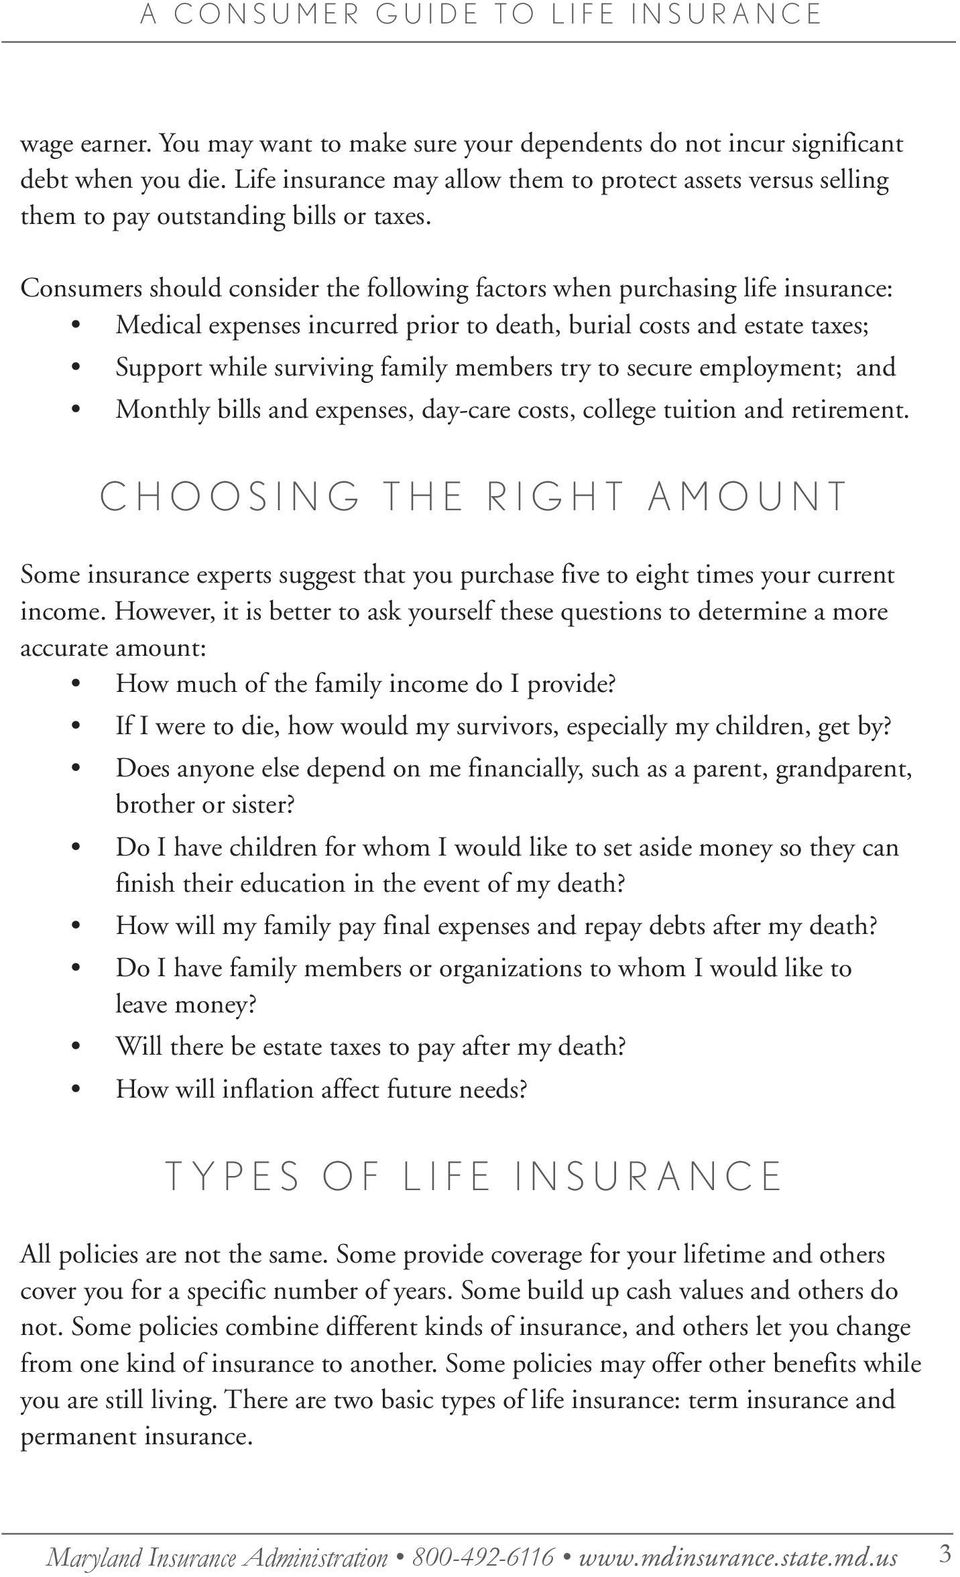 Consumers should consider the following factors when purchasing life insurance: Medical expenses incurred prior to death, burial costs and estate taxes; Support while surviving family members try to